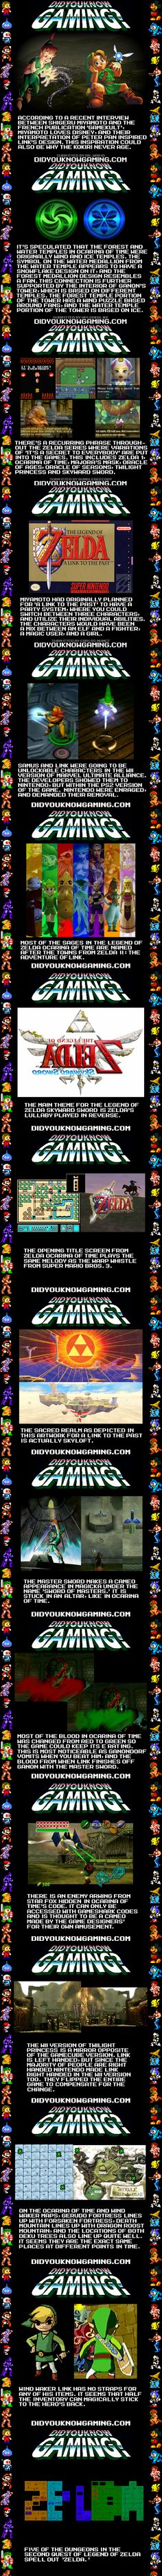 Legend of Zelda fun facts